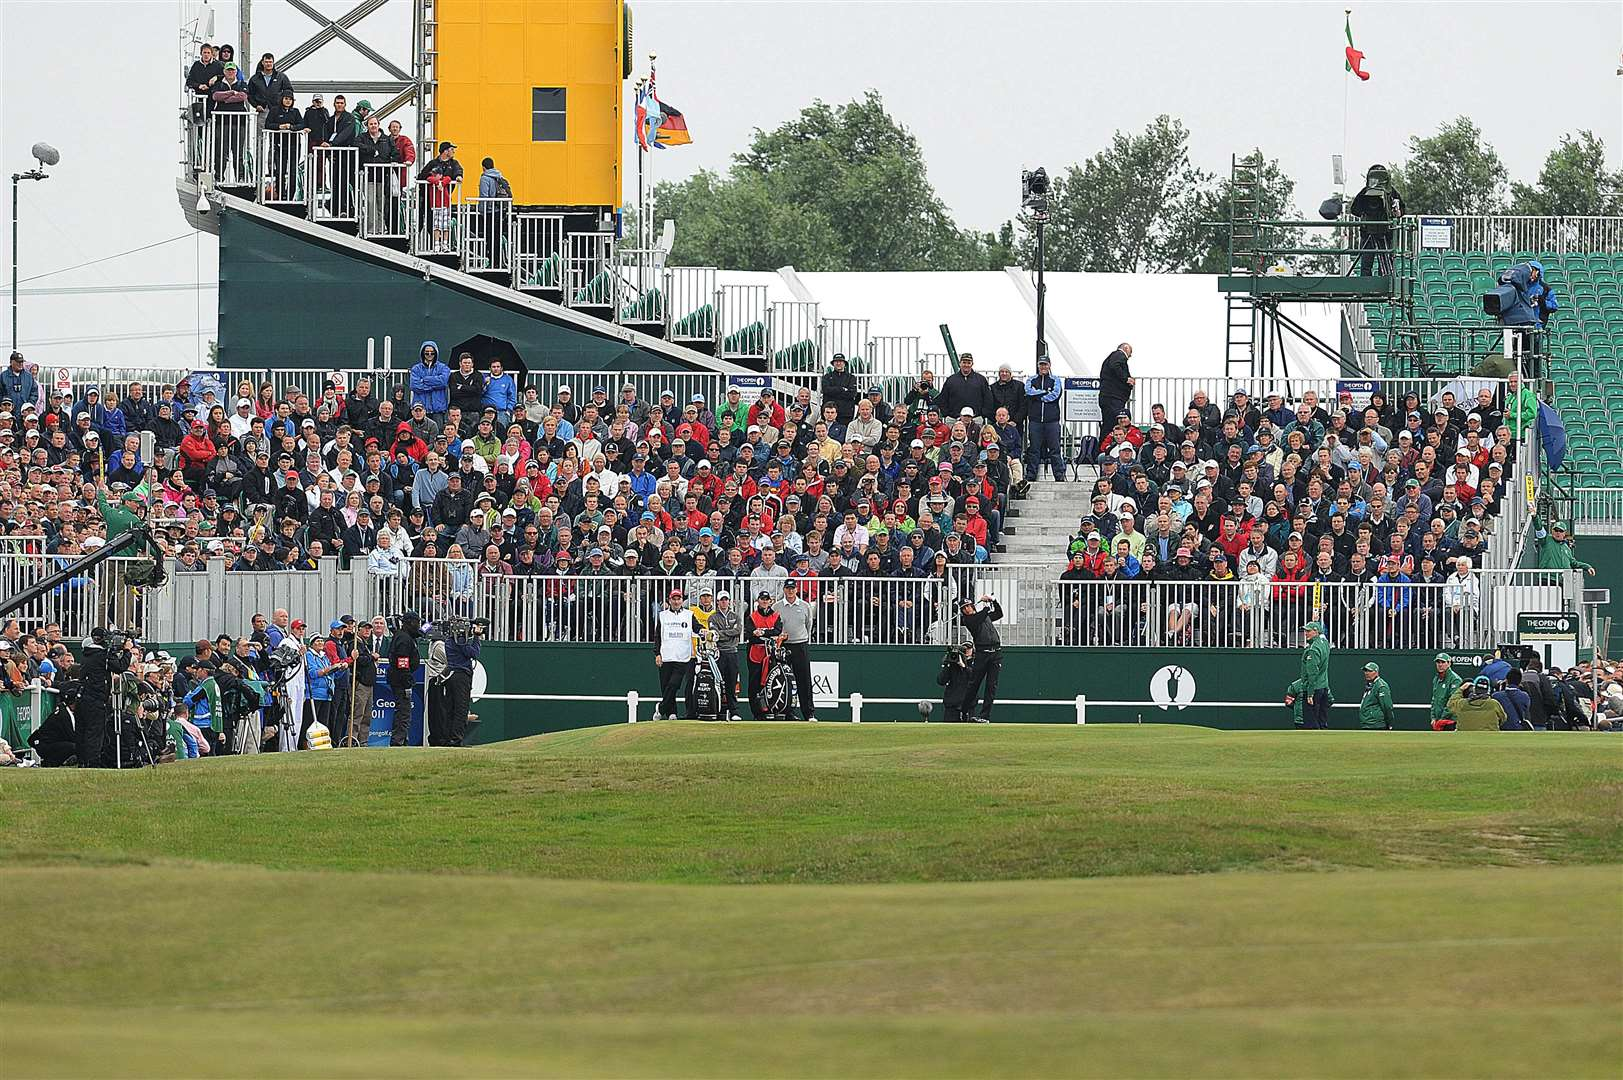 More than 181,000 people are expected to flock to Sandwich to enjoy The Open championship Picture: Barry Goodwin